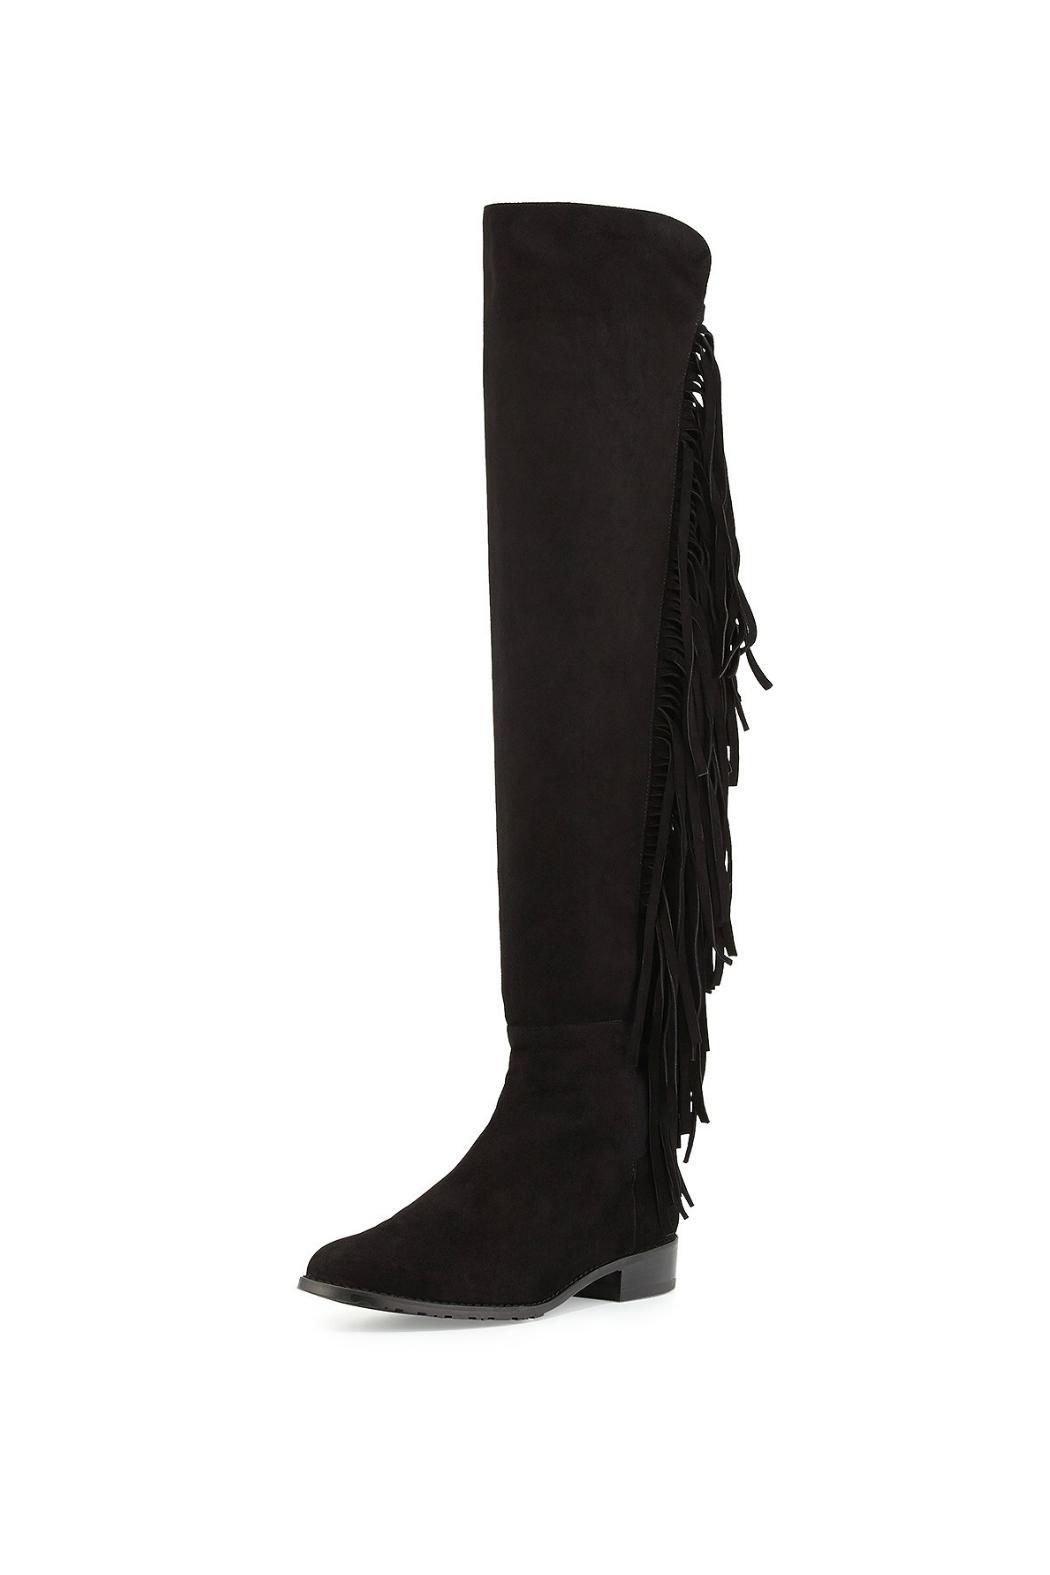 Good Selling Online fringed boots - Black Stuart Weitzman Best Cheap Online Wholesale Price Online Wholesale Price Sale Online Best Place For Sale RSq53k